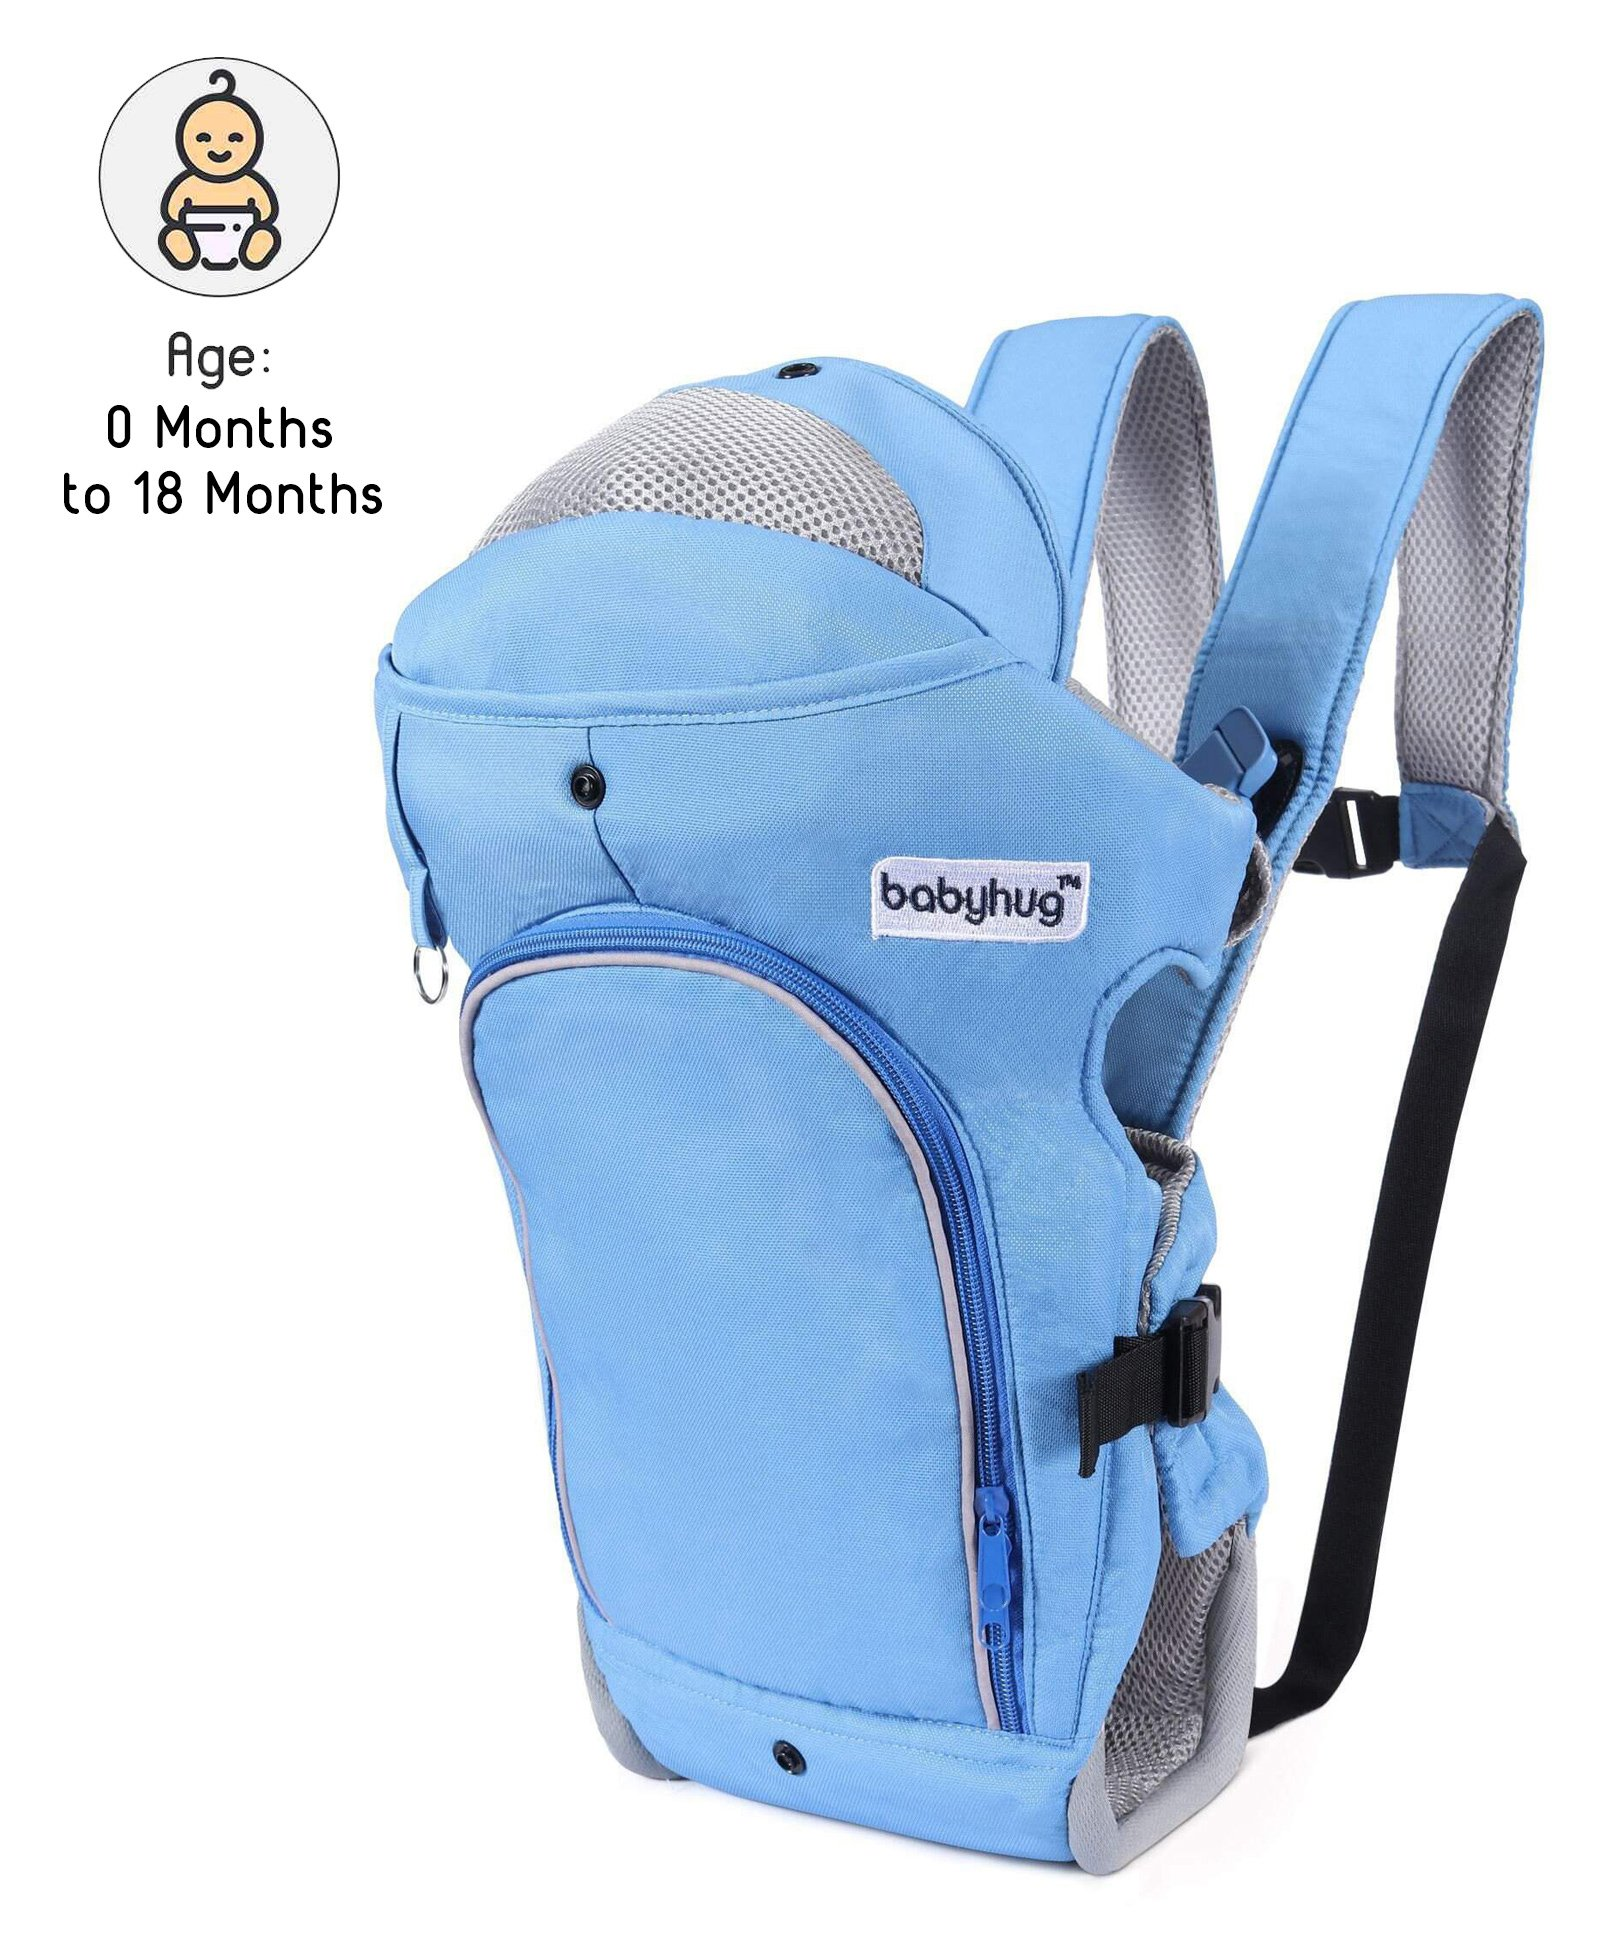 Babyhug Comfort Nest 3 Way Baby Carrier - Sky Blue